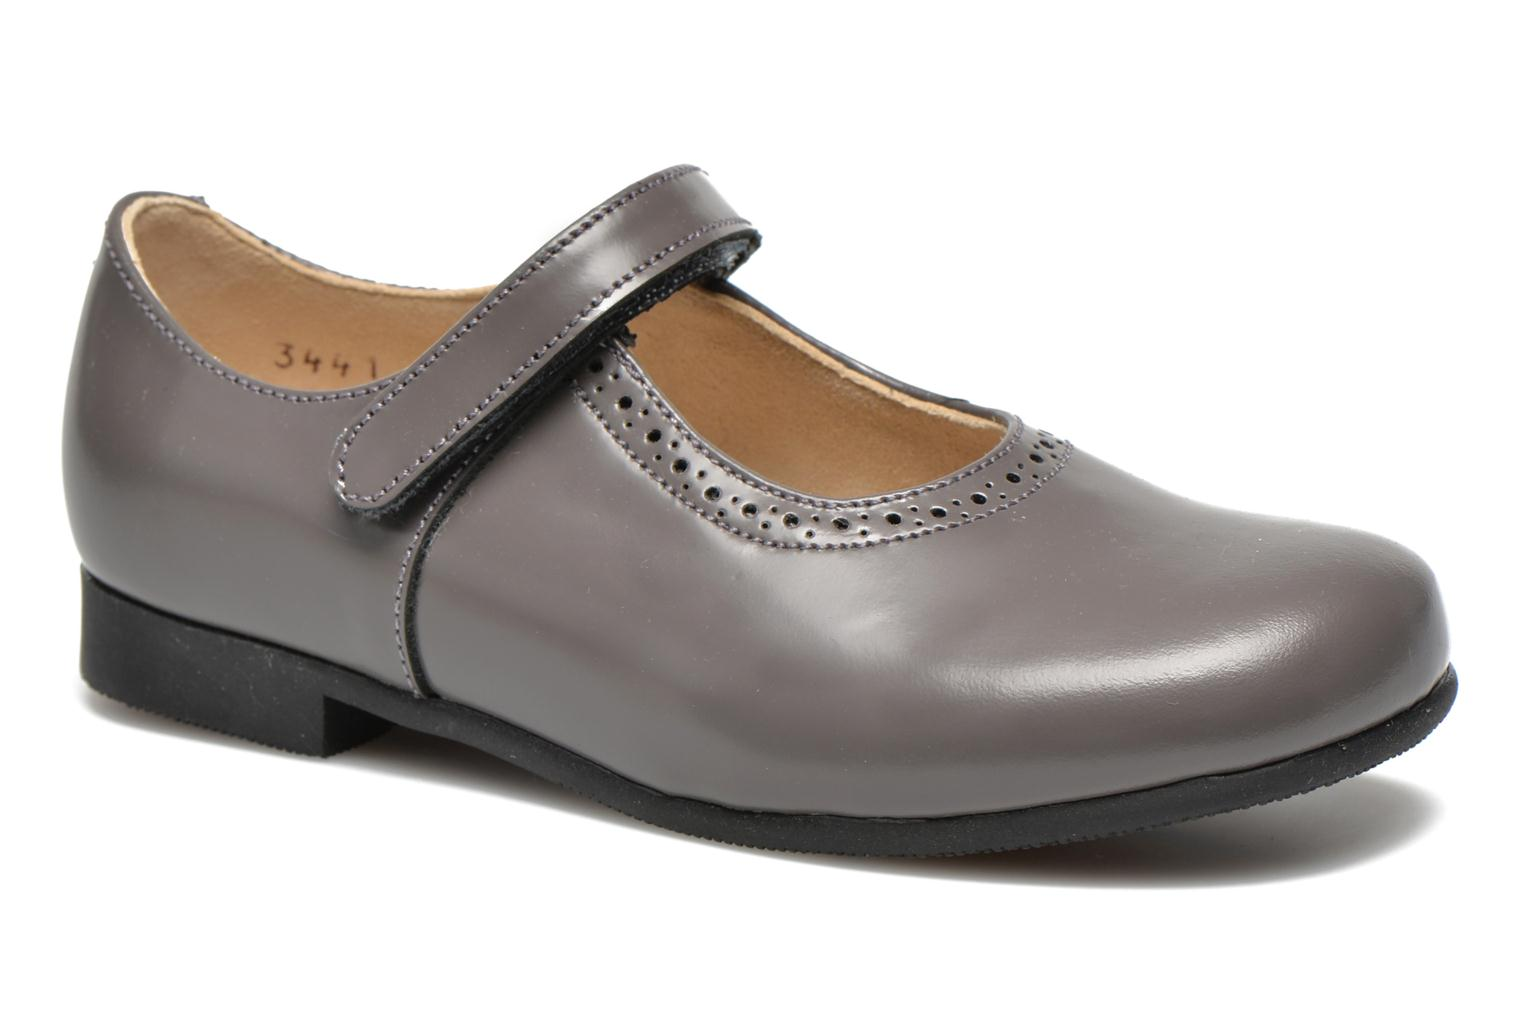 Delphine Grey leather